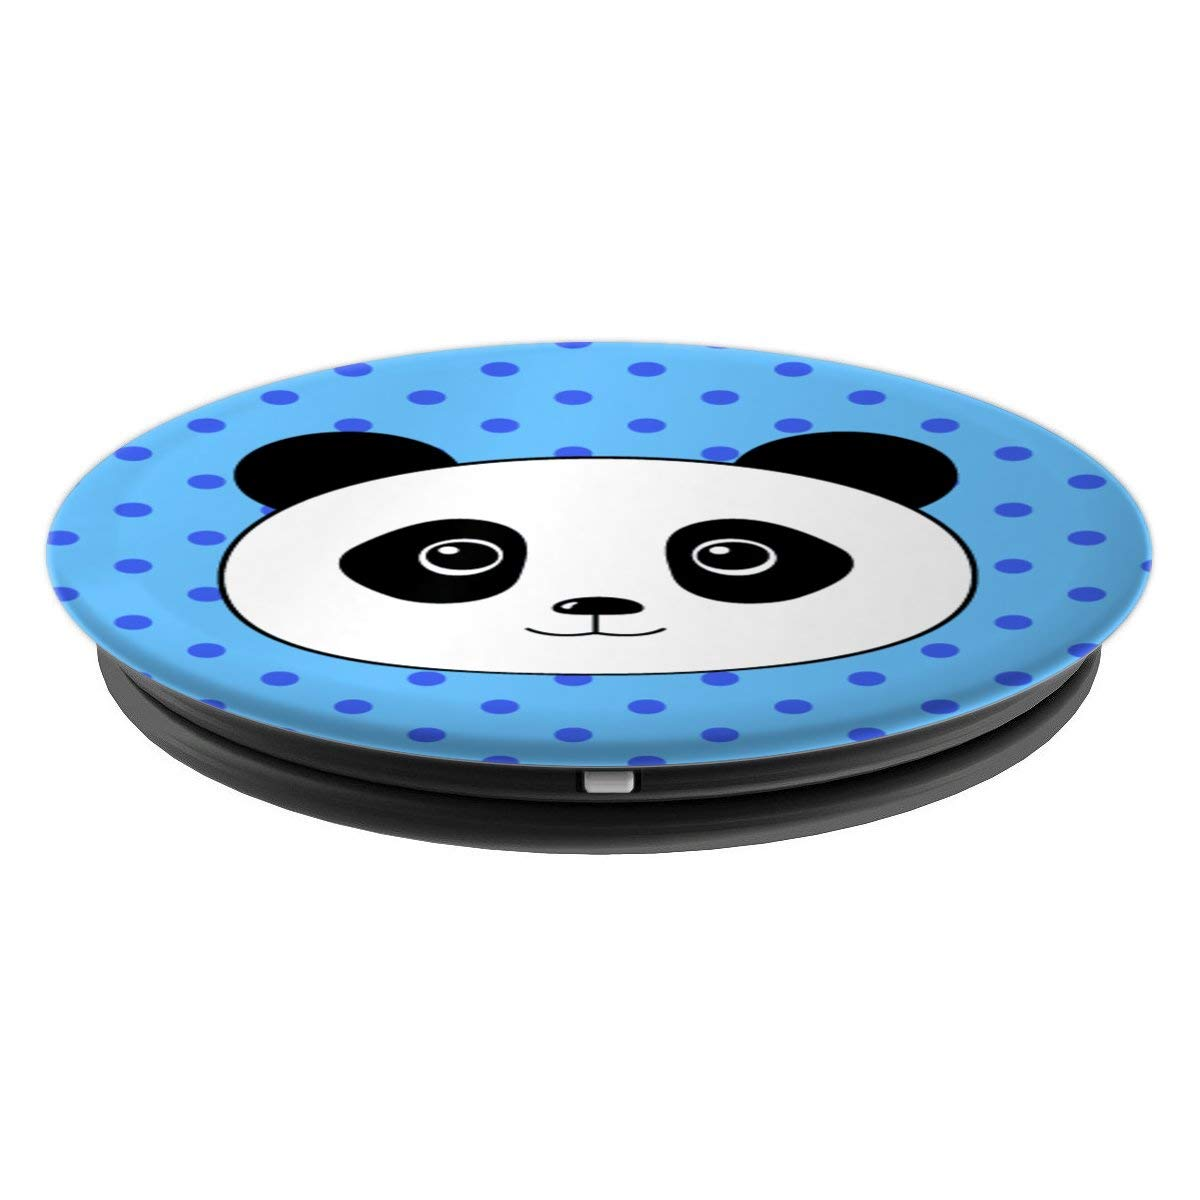 Amazon.com: Cute Kawaii Baby Panda Stuff Gift Sky Blue Pop Socket Girly - PopSockets Grip and Stand for Phones and Tablets: Cell Phones & Accessories